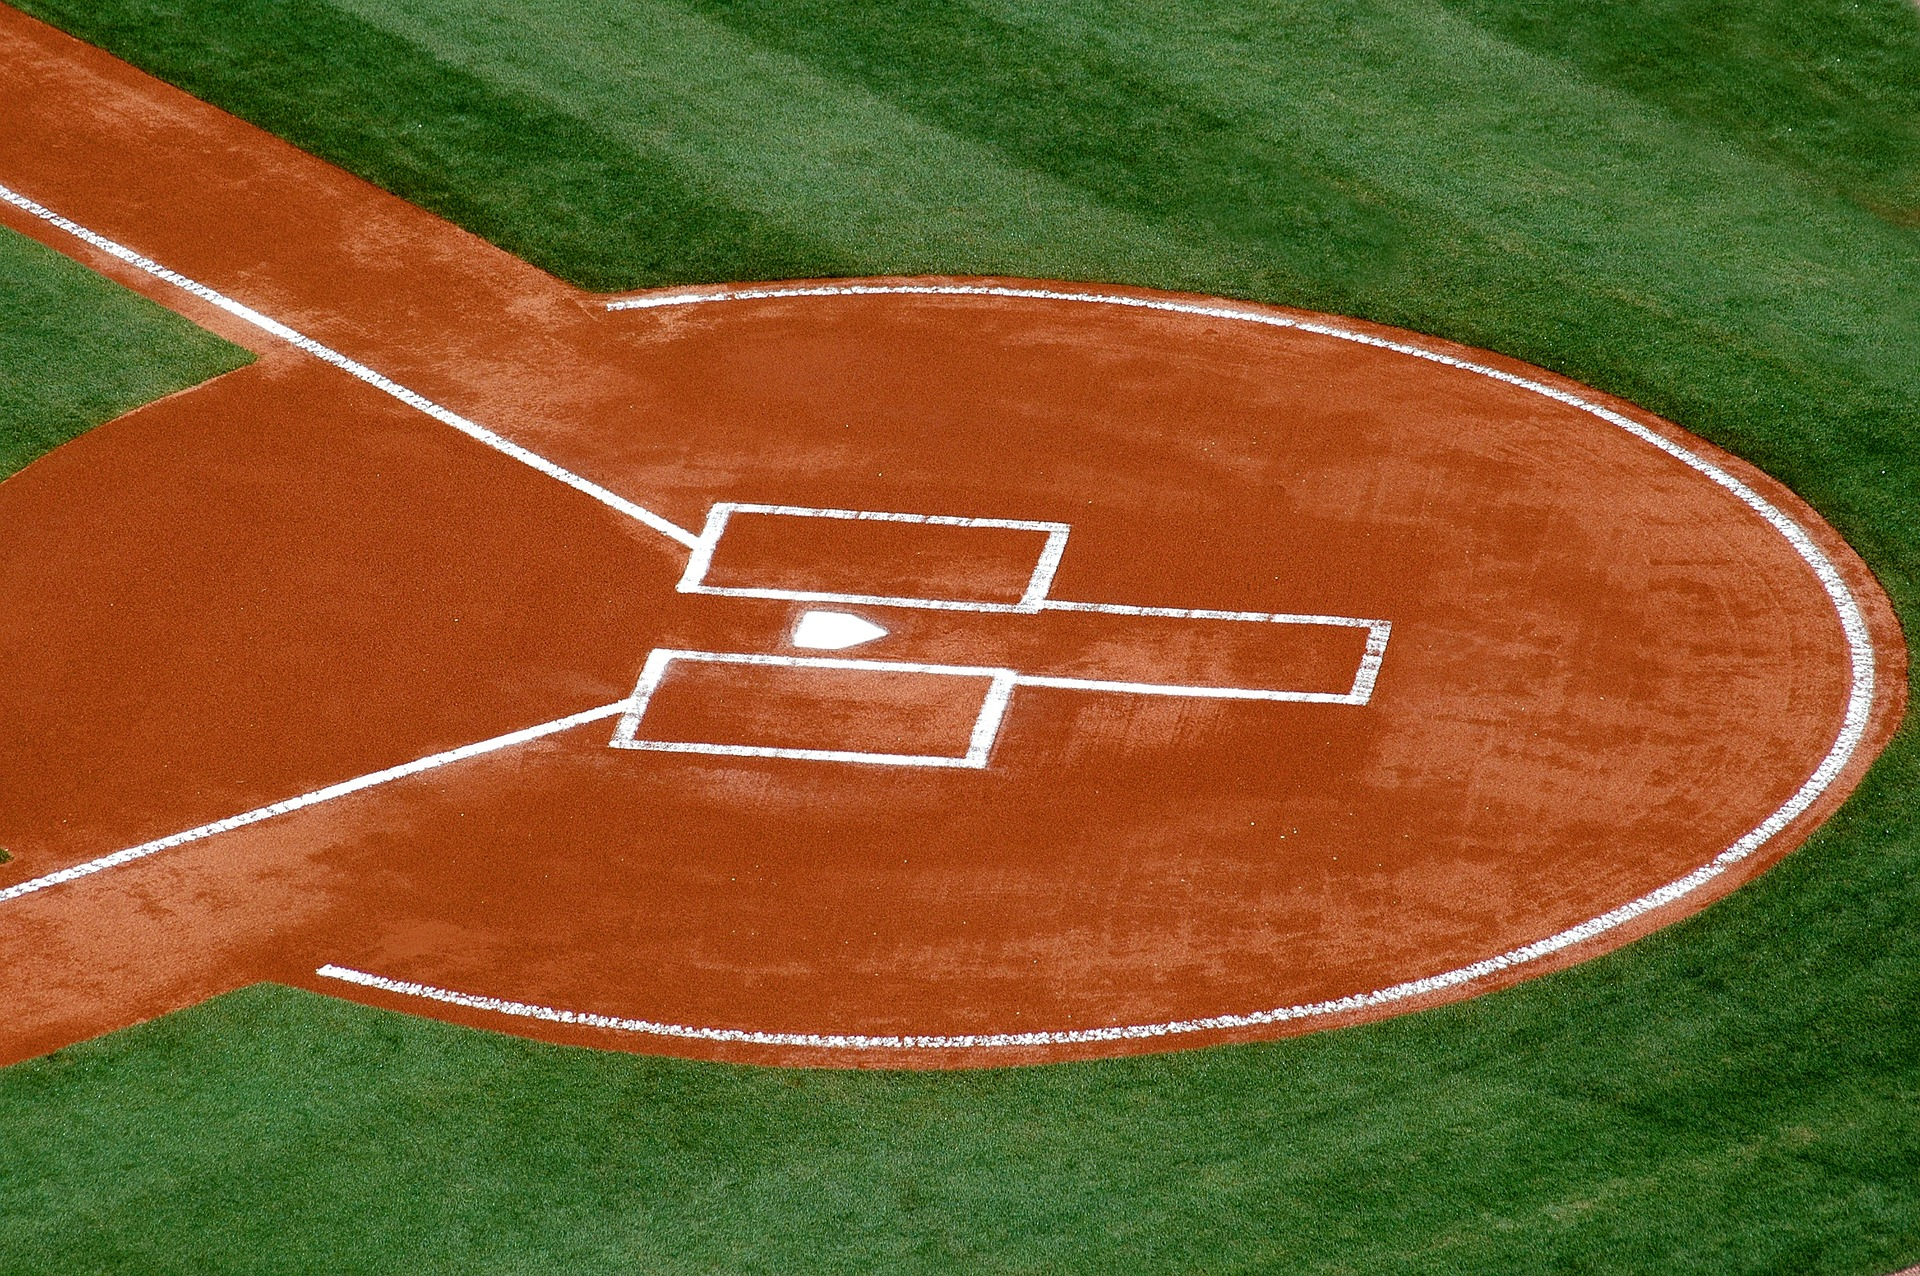 home-plate-1592627_1920